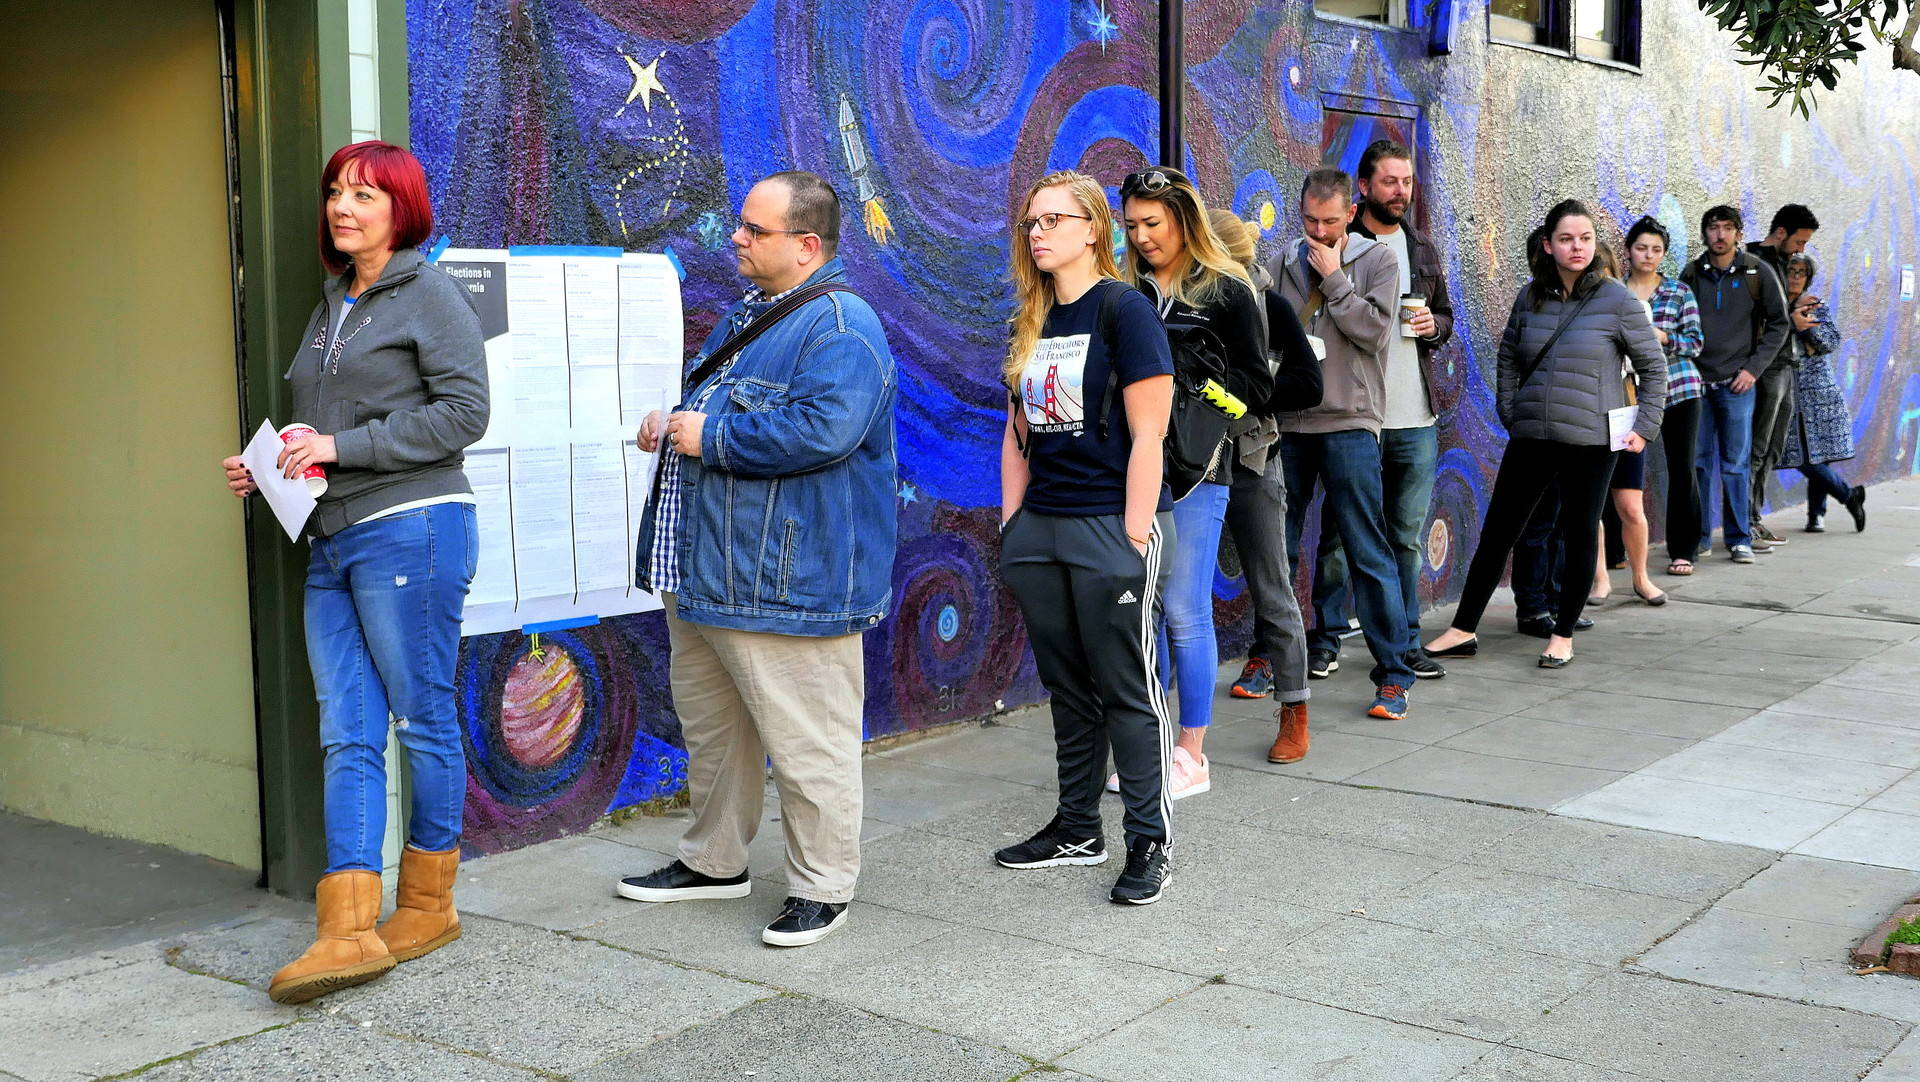 A line of voters wraps around a building in the Mission District. Sheraz Sadiq/KQED